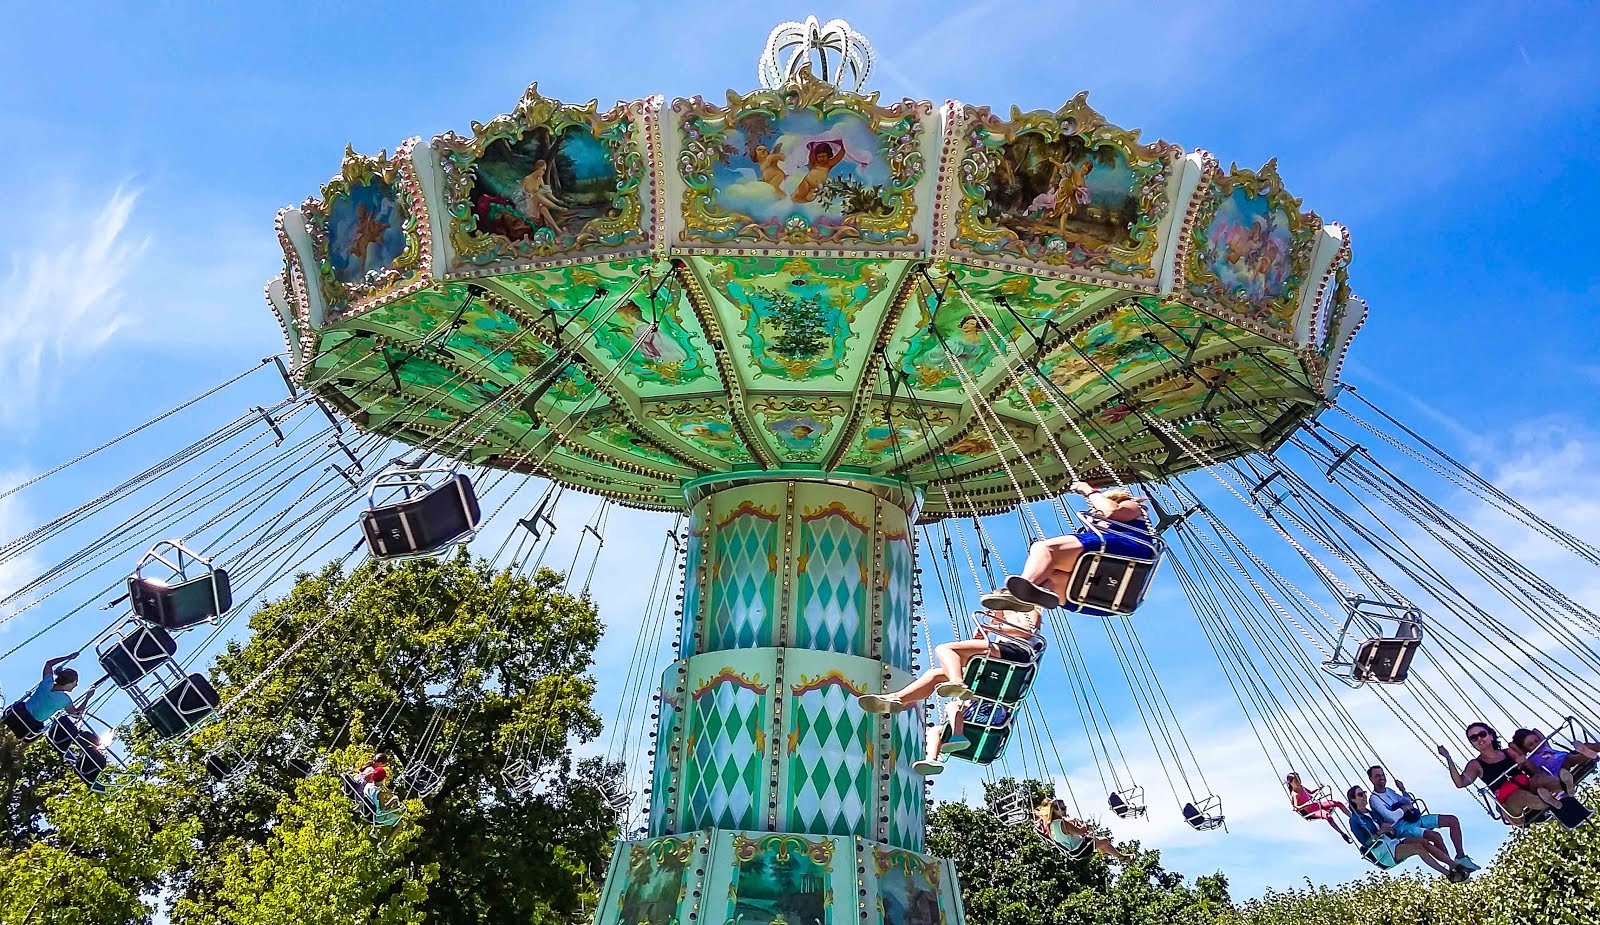 Paris Beloved Jardin D Acclimatation Starts A 60 Million Euros